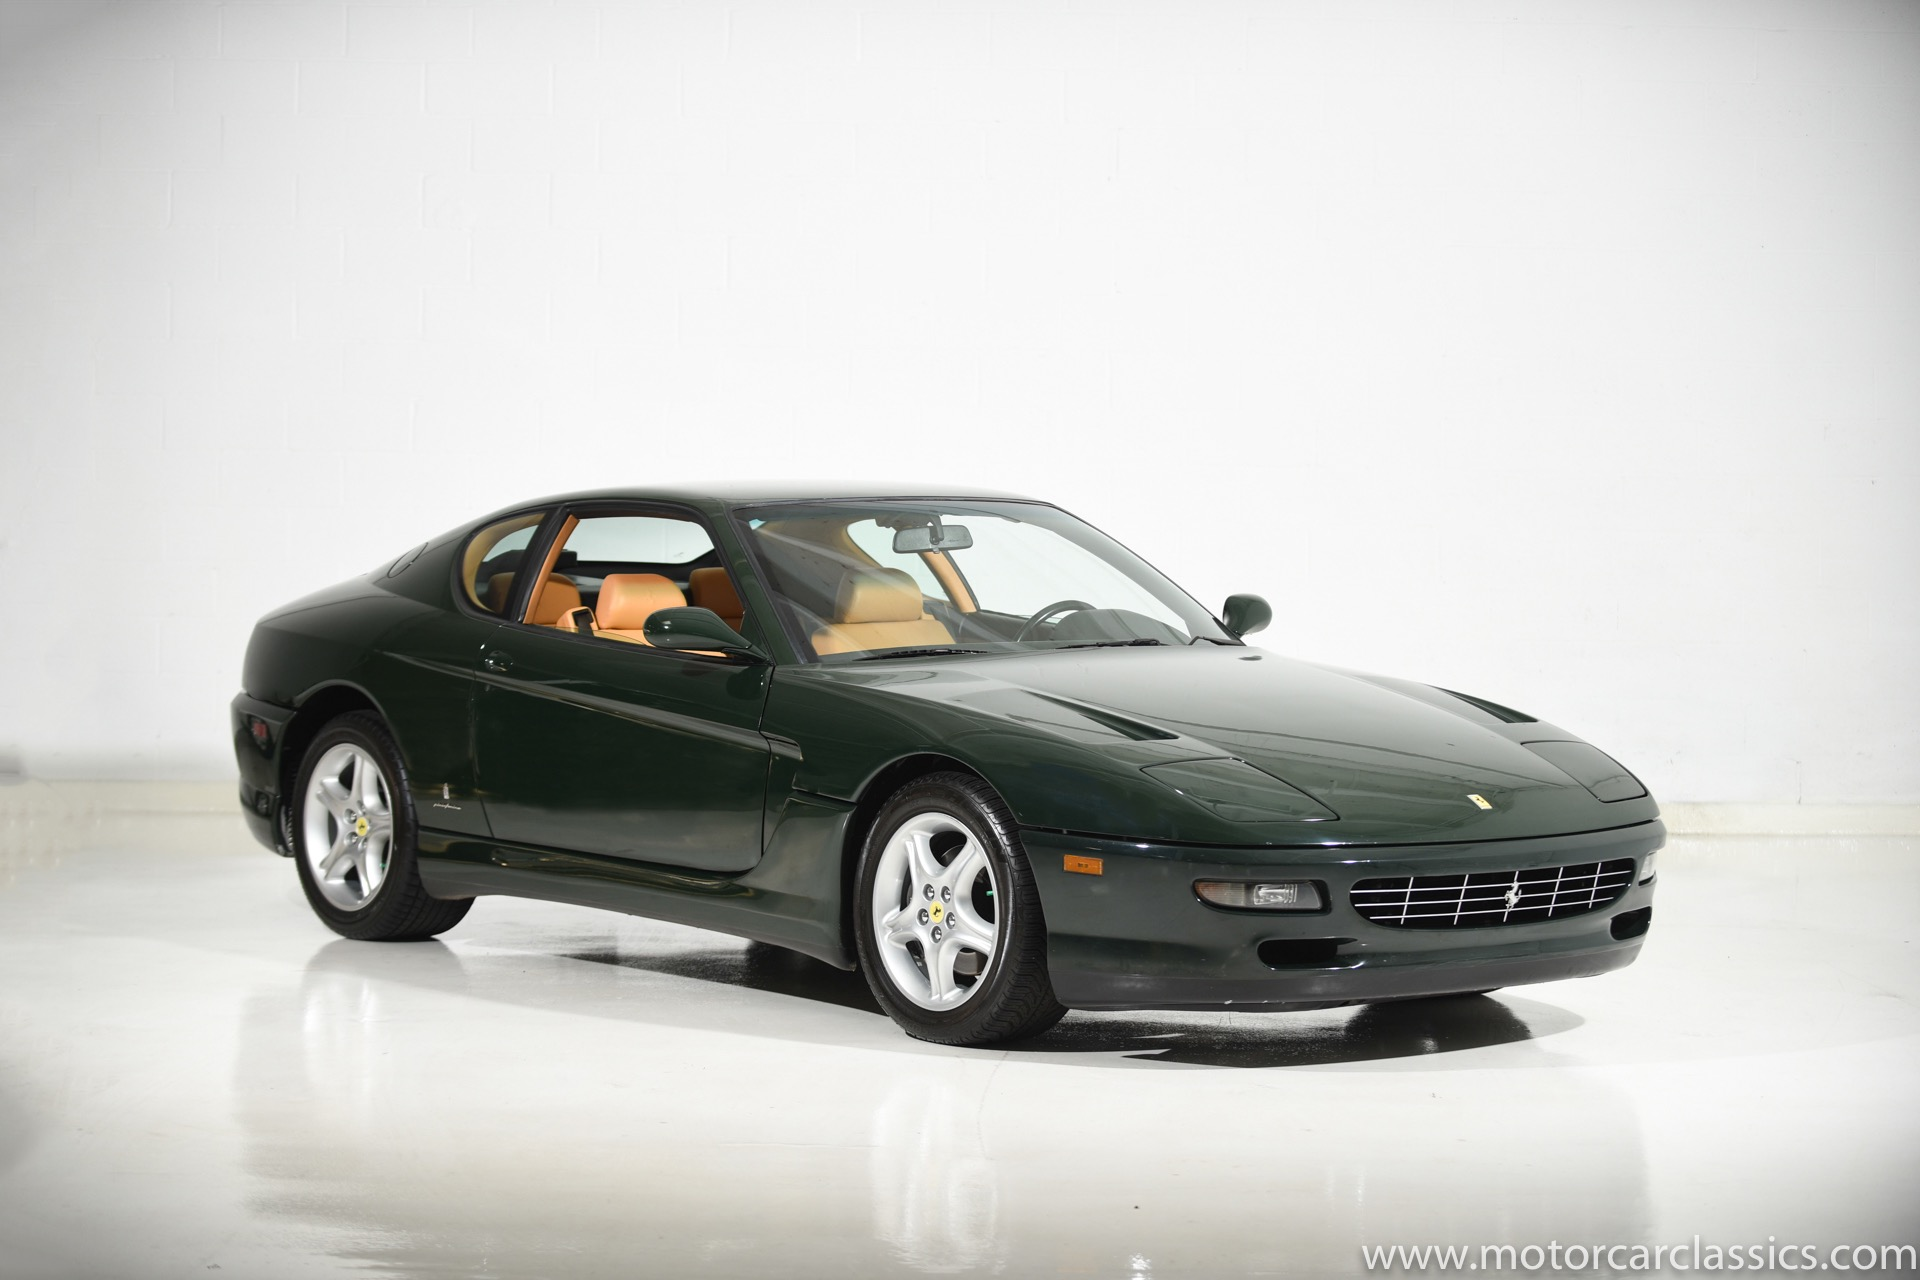 Used 1995 Ferrari 456 For Sale 89 900 Motorcar Classics Stock 1293